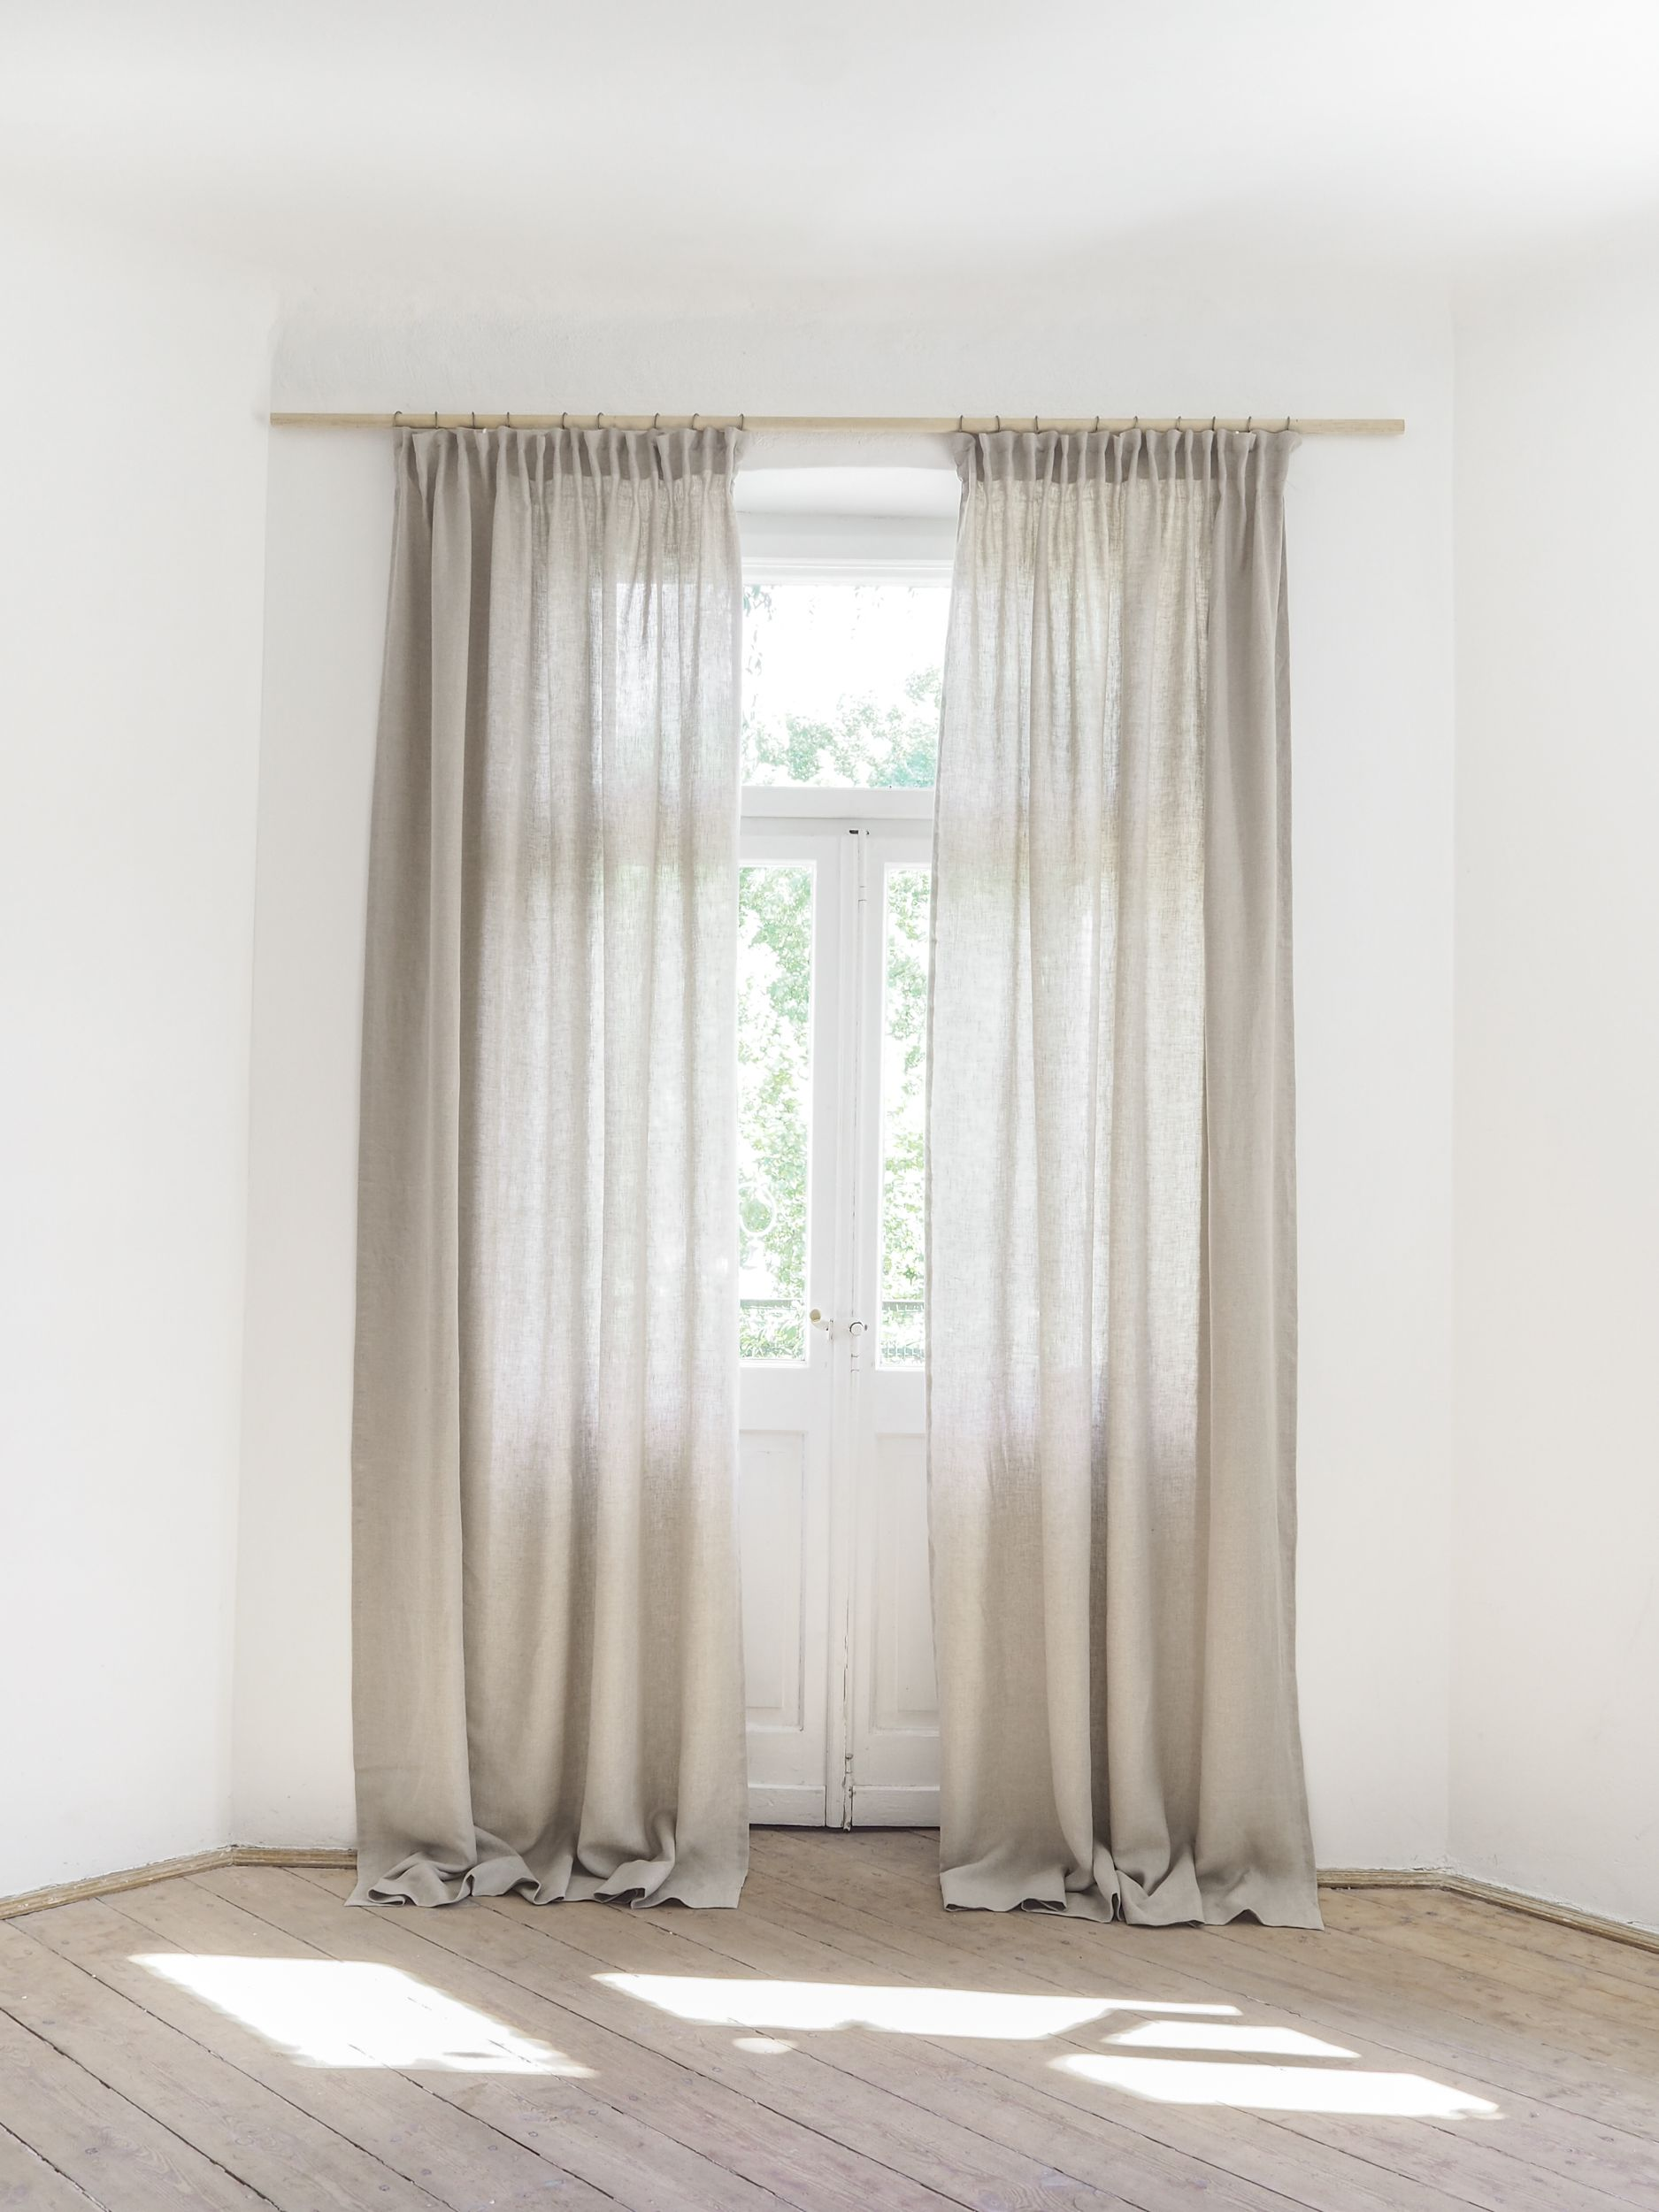 Linen Curtain With With Pencil Pleats Or Pleating Tape Pencil